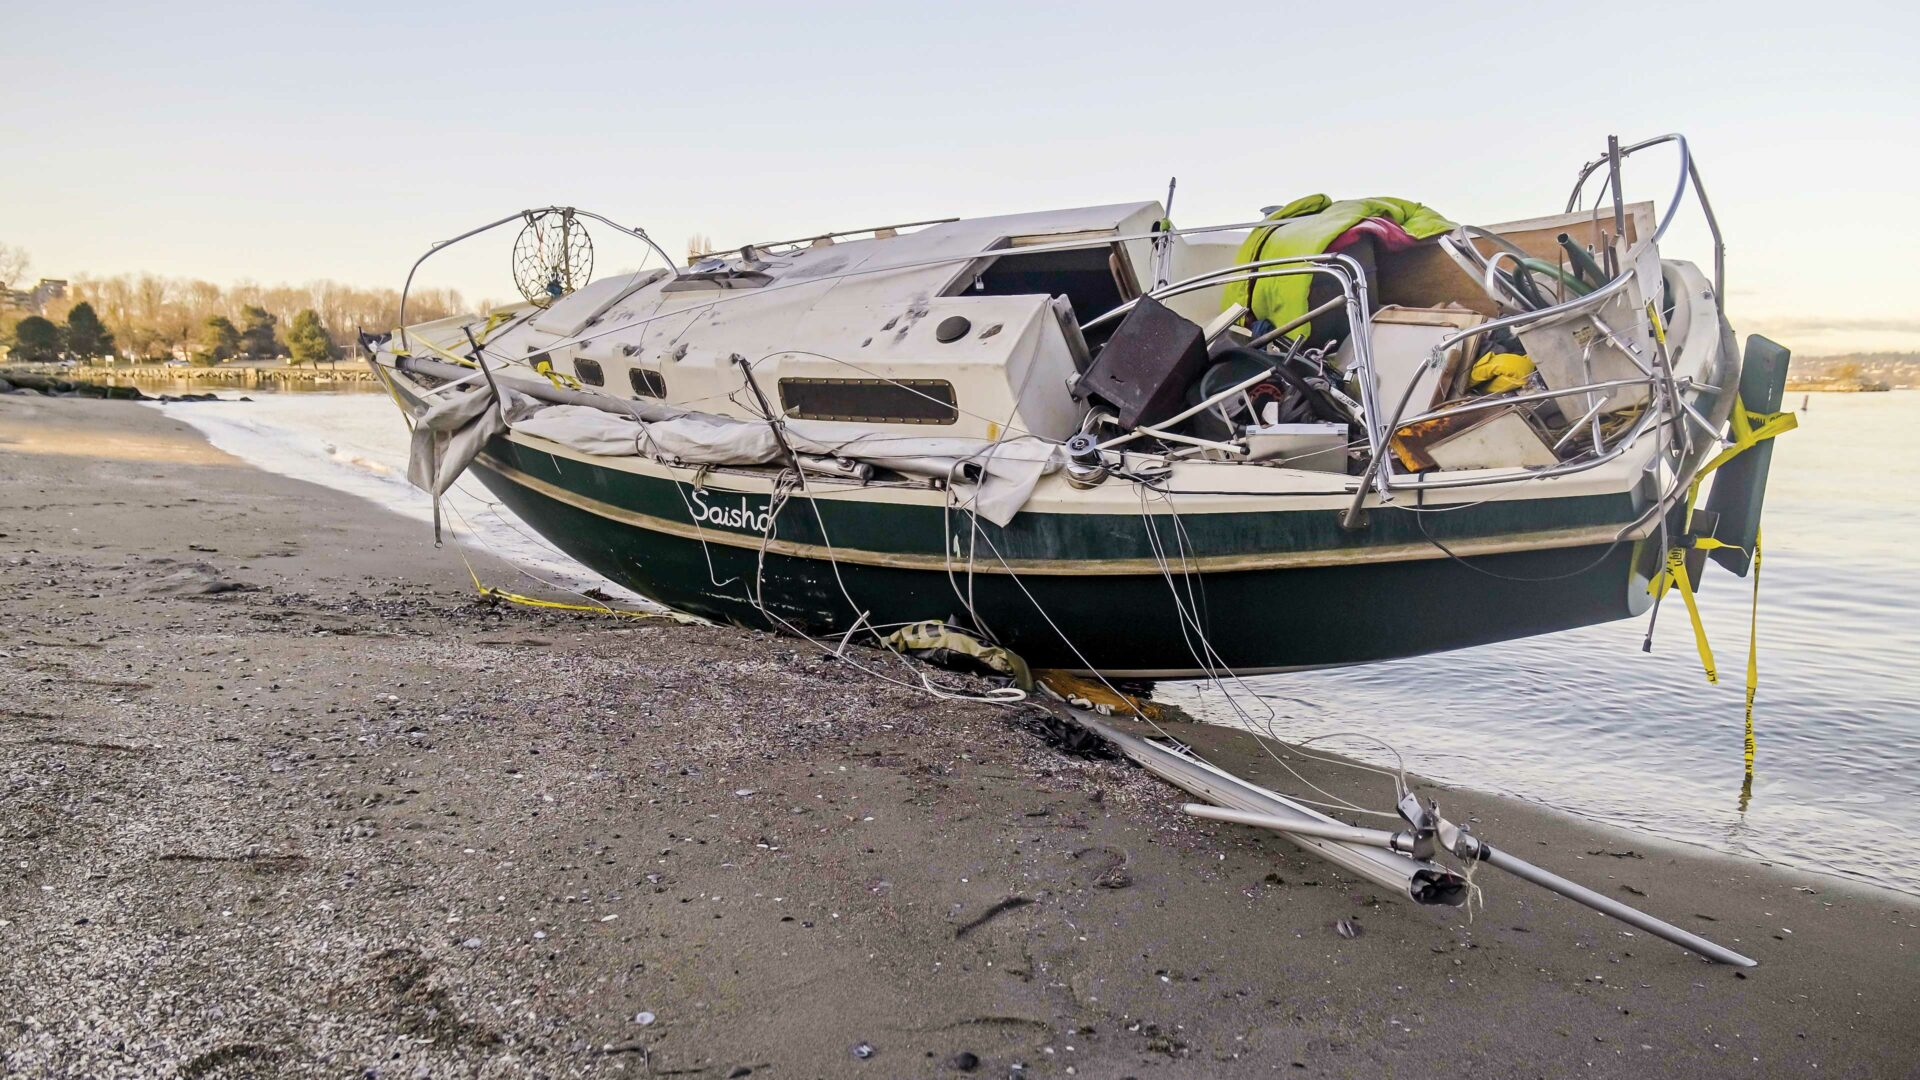 Clearly an eyesore, abandoned and dilapidated vessels can also be a hazard to the environment. Photo by KK Law.